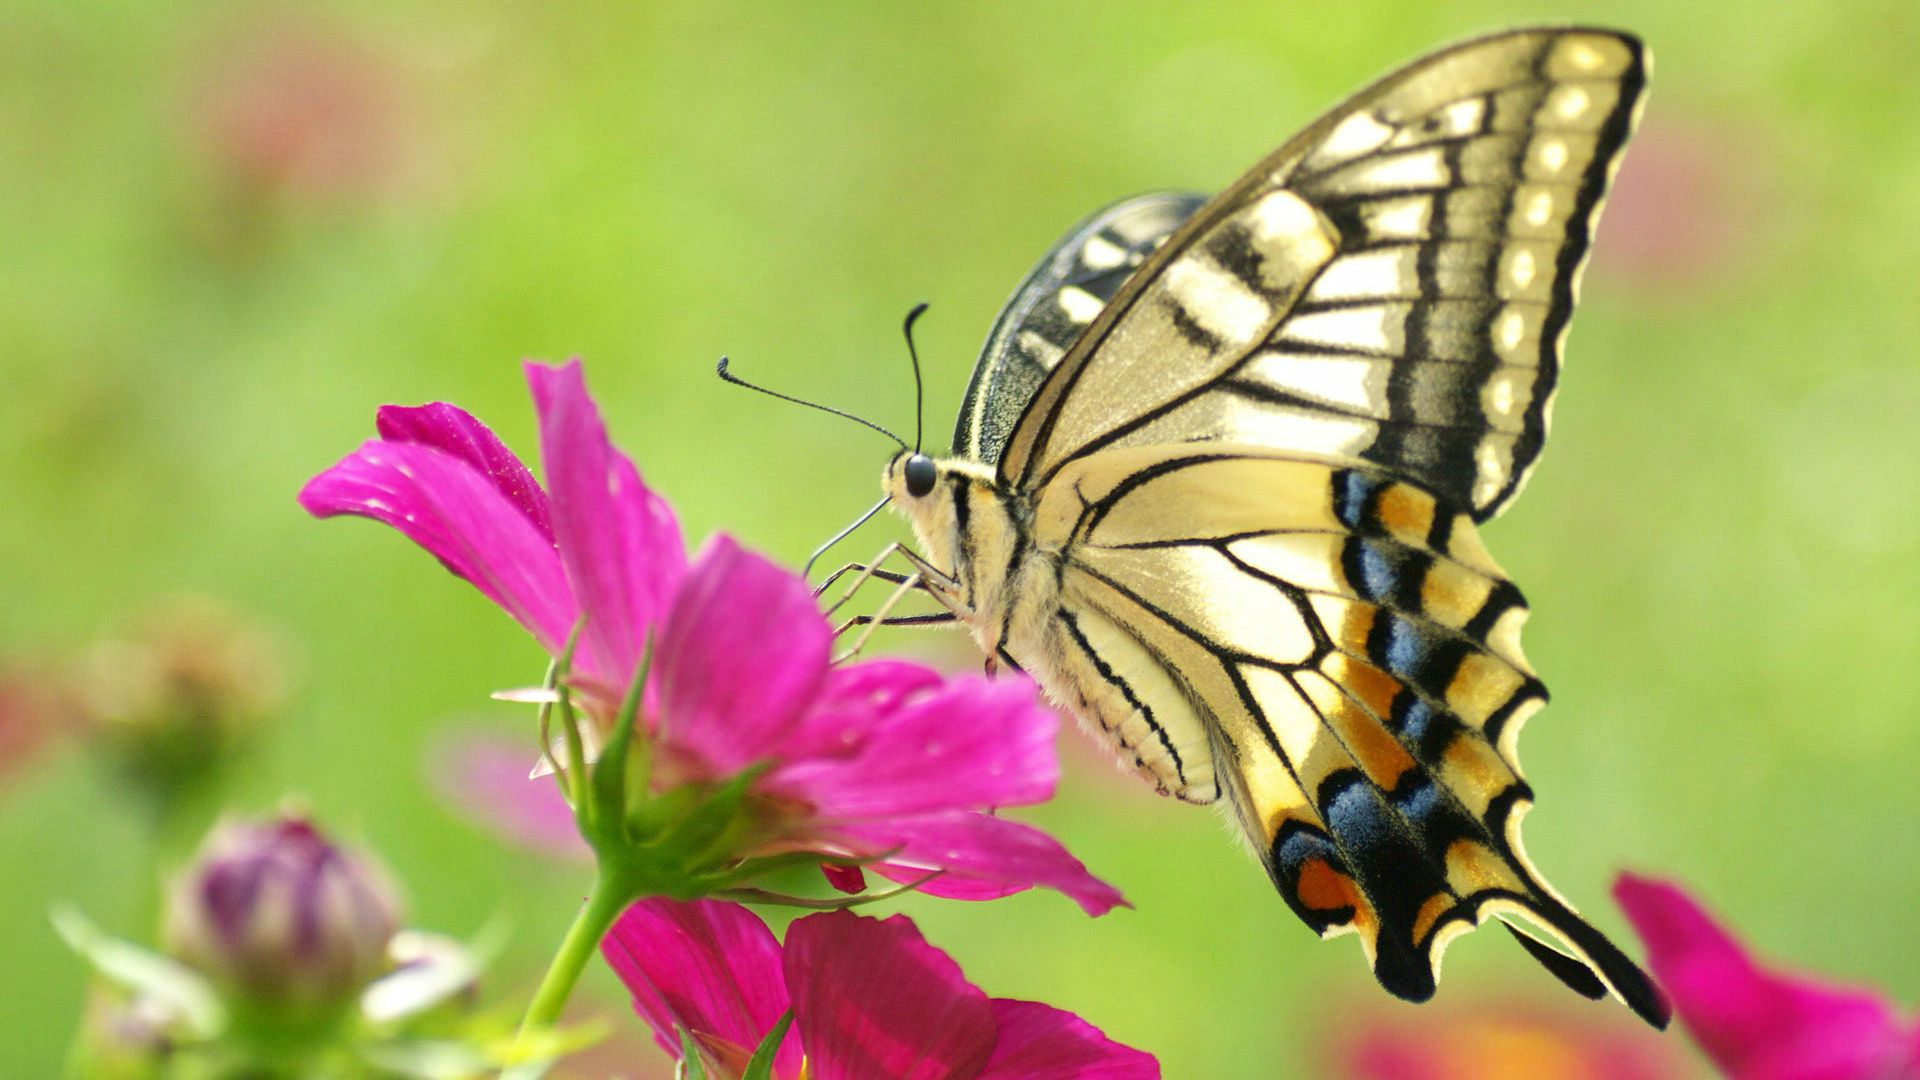 http://www.hotcurrentaffairs/butterfly-flower-wallpaper